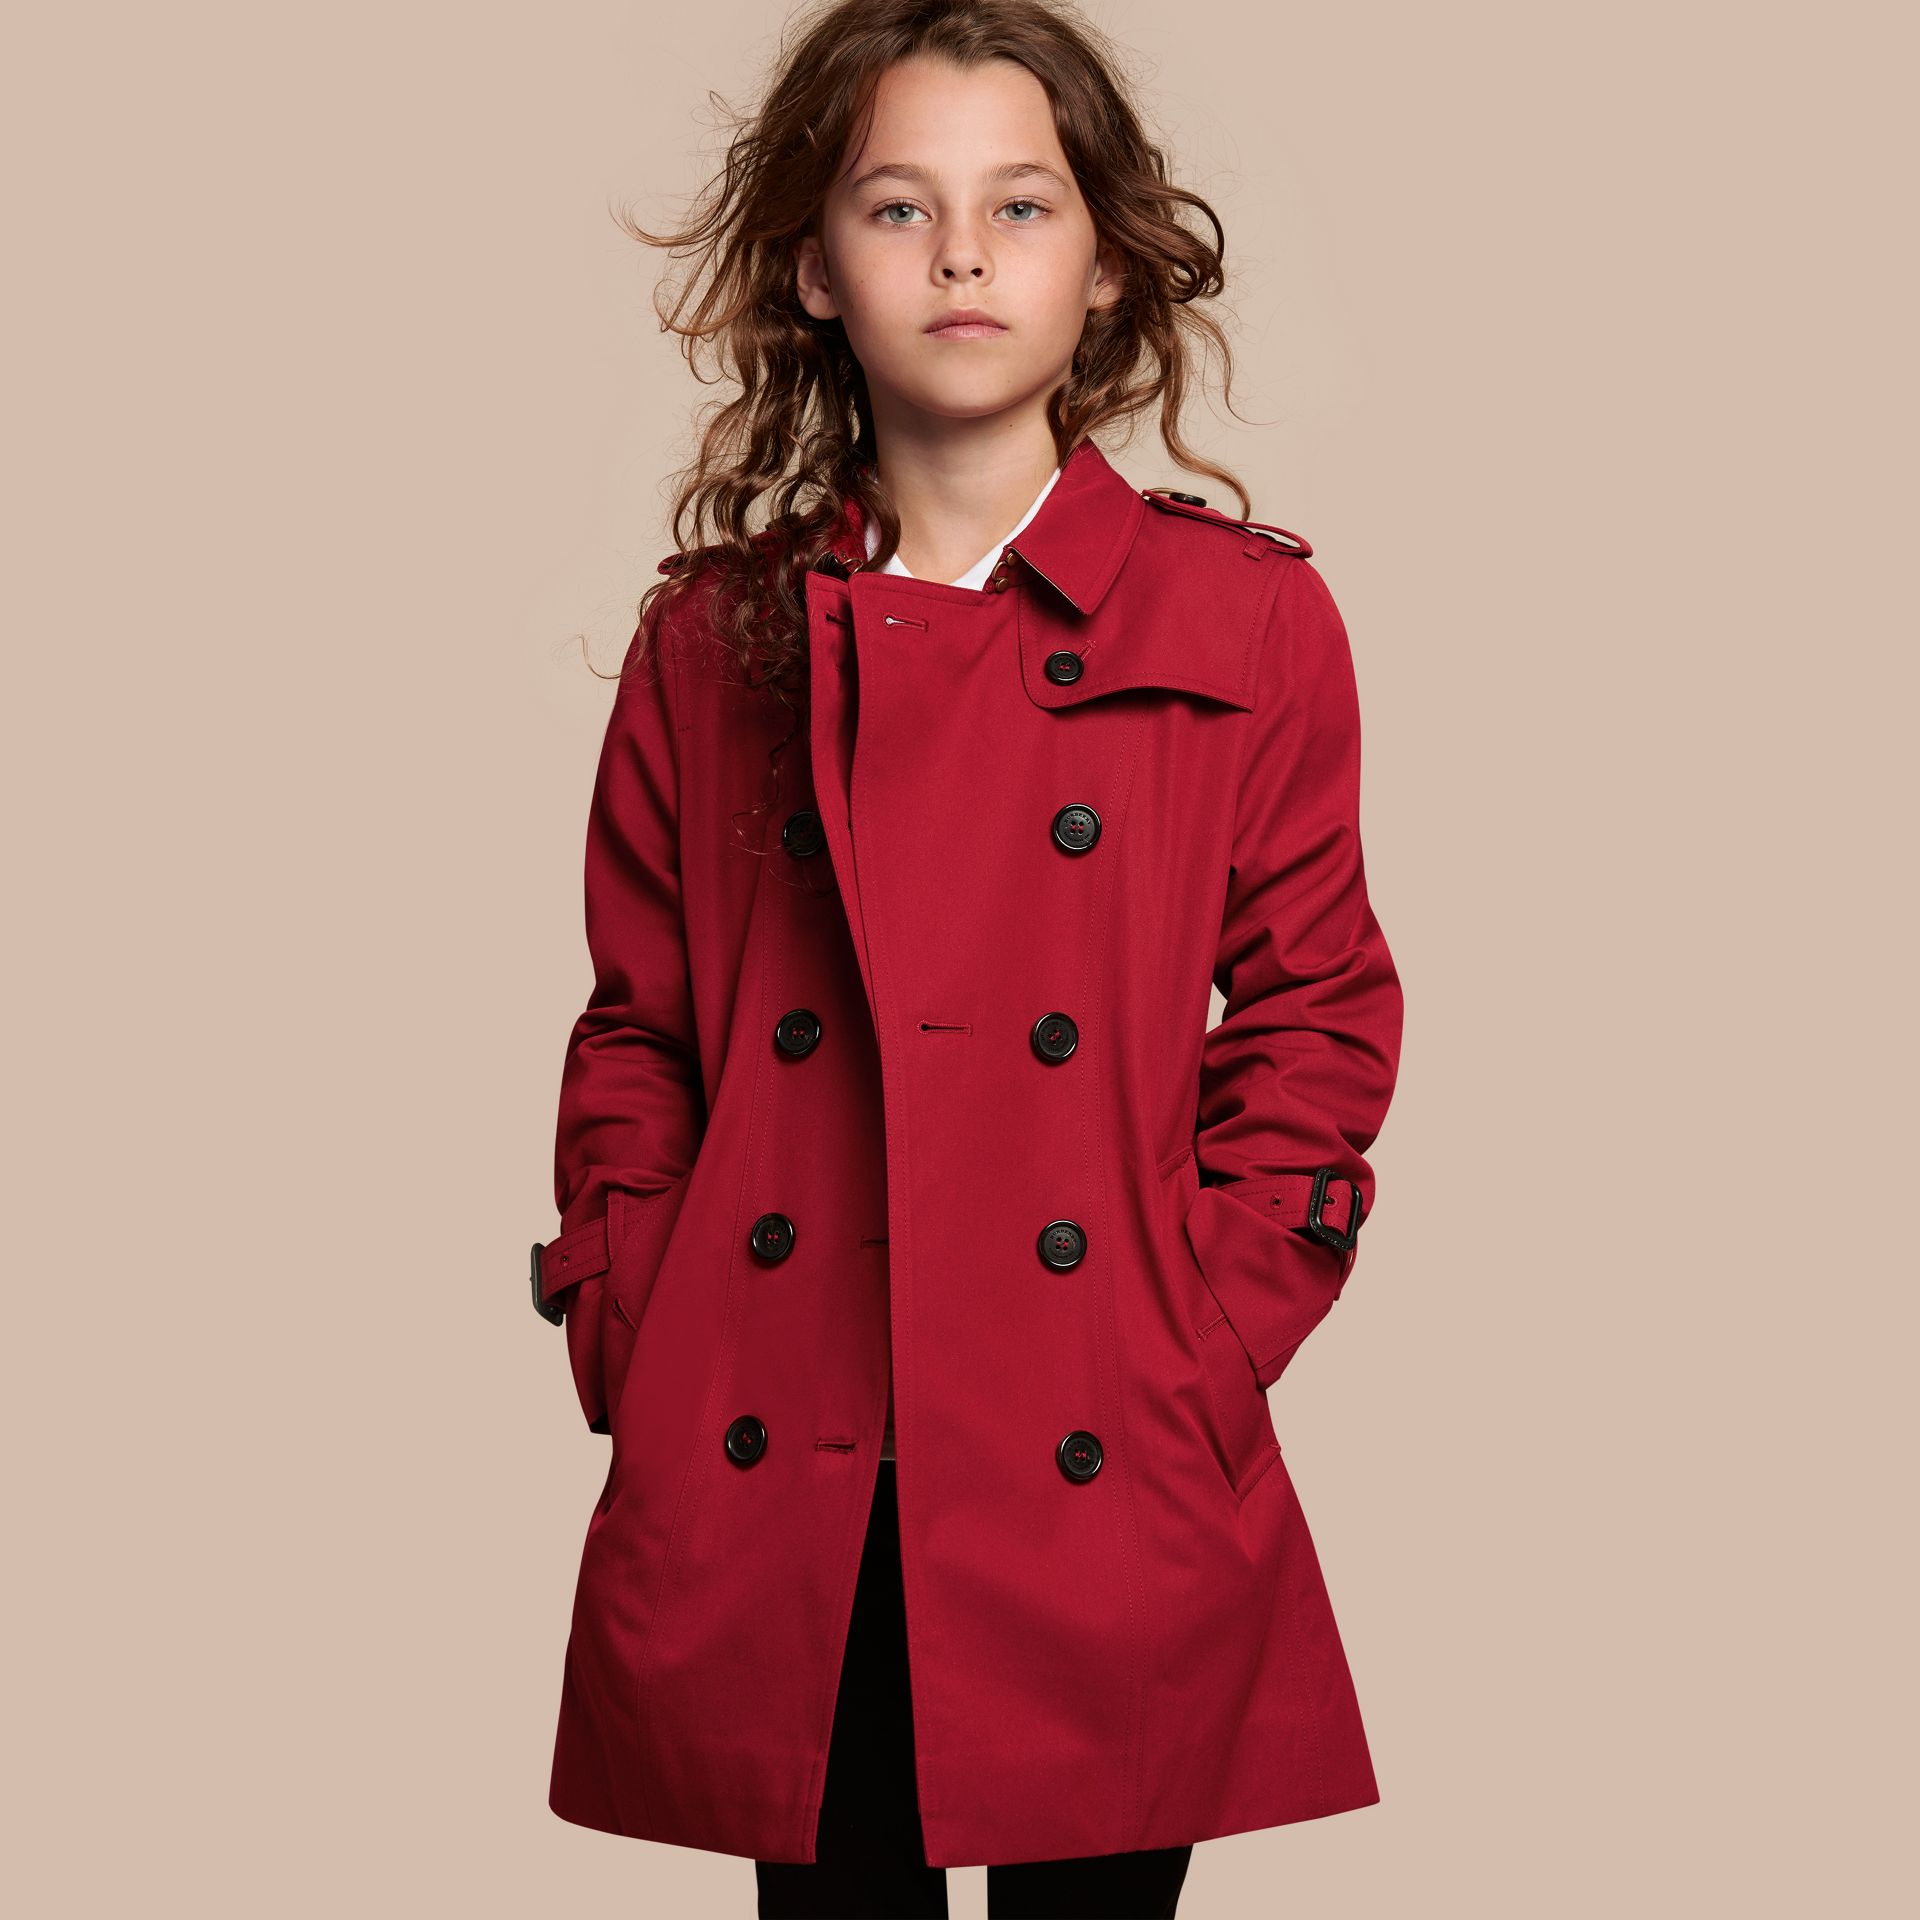 The Sandringham – Heritage Trench Coat in Parade Red - gallery image 1